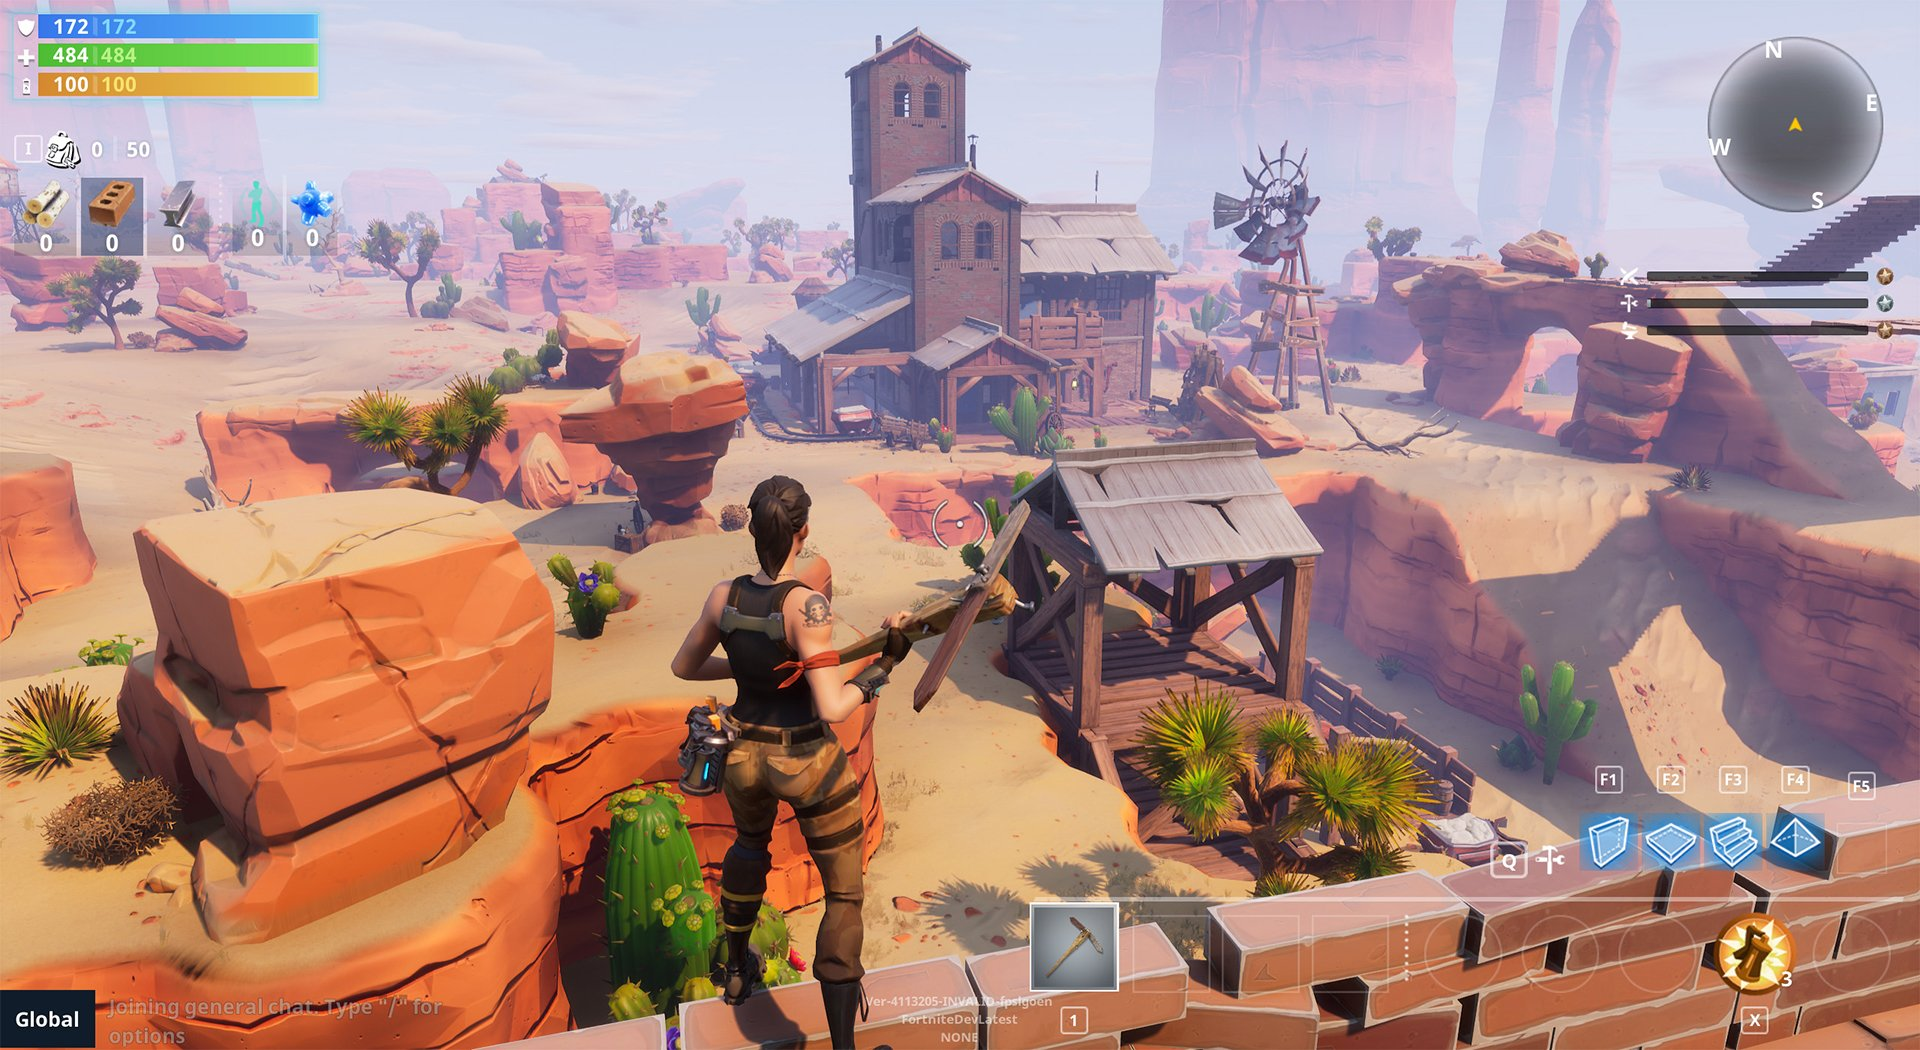 https://www.epicgames.com/fortnite/en-US/news/save-the-world-state-of-development---june-2018?sessionInvalidated=true